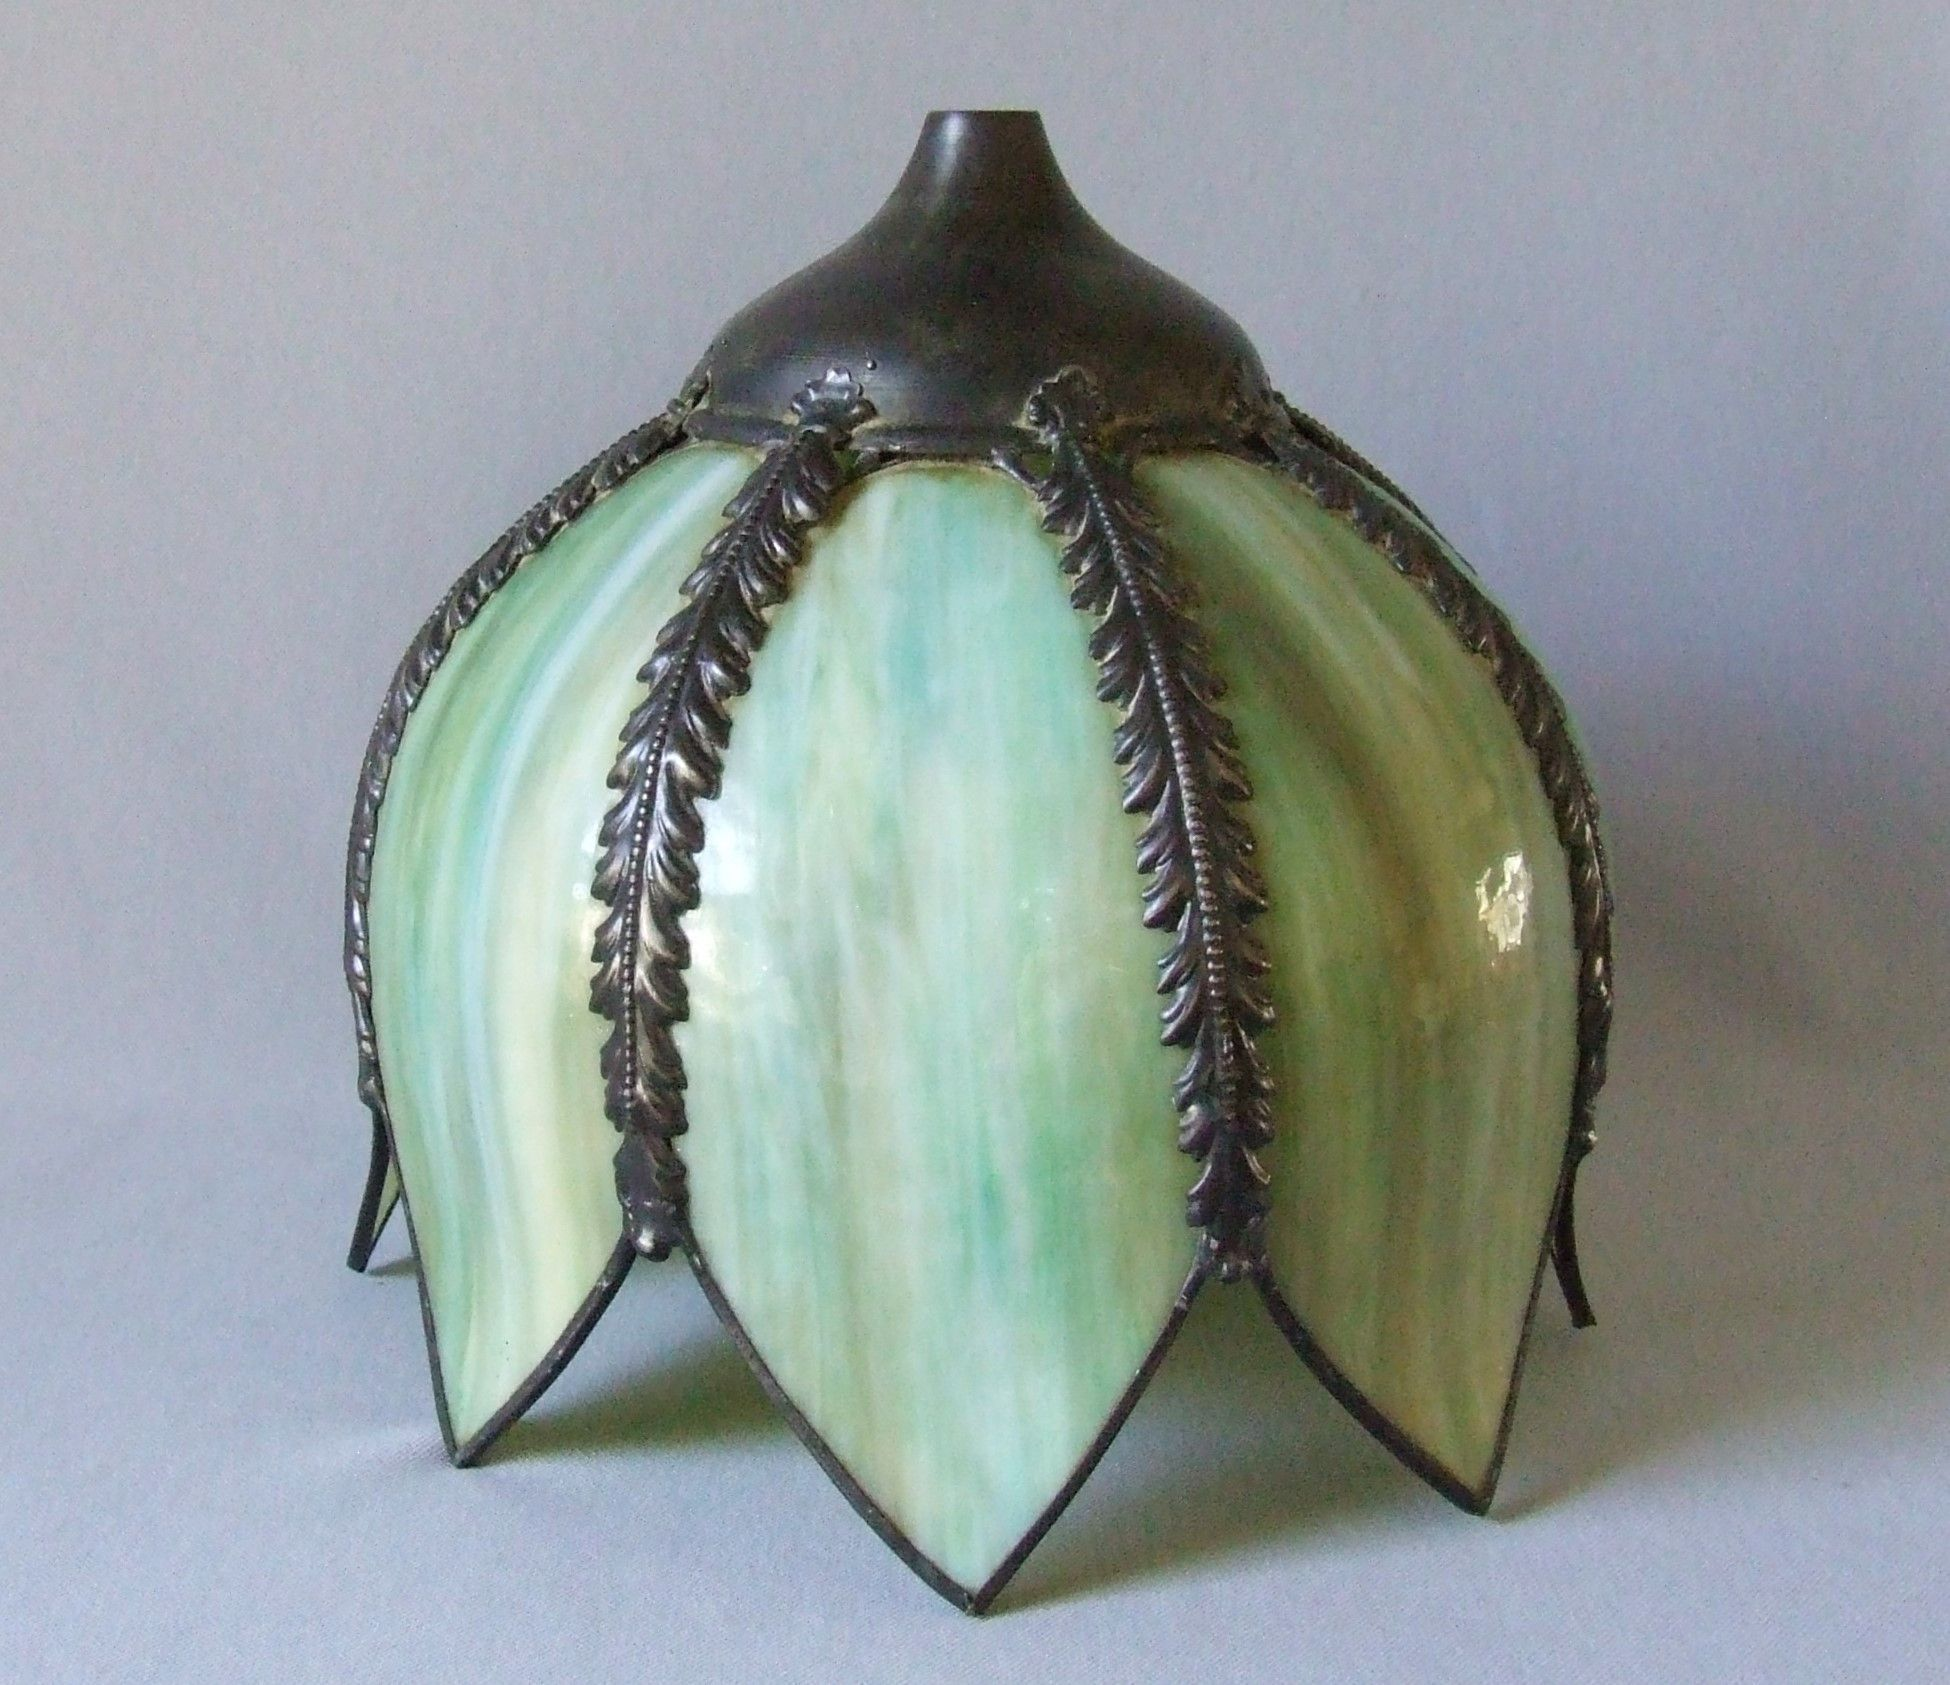 Vintage Green Glass Light Fixture: Vintage Green Slag Stained Glass Tulip Shade For Light